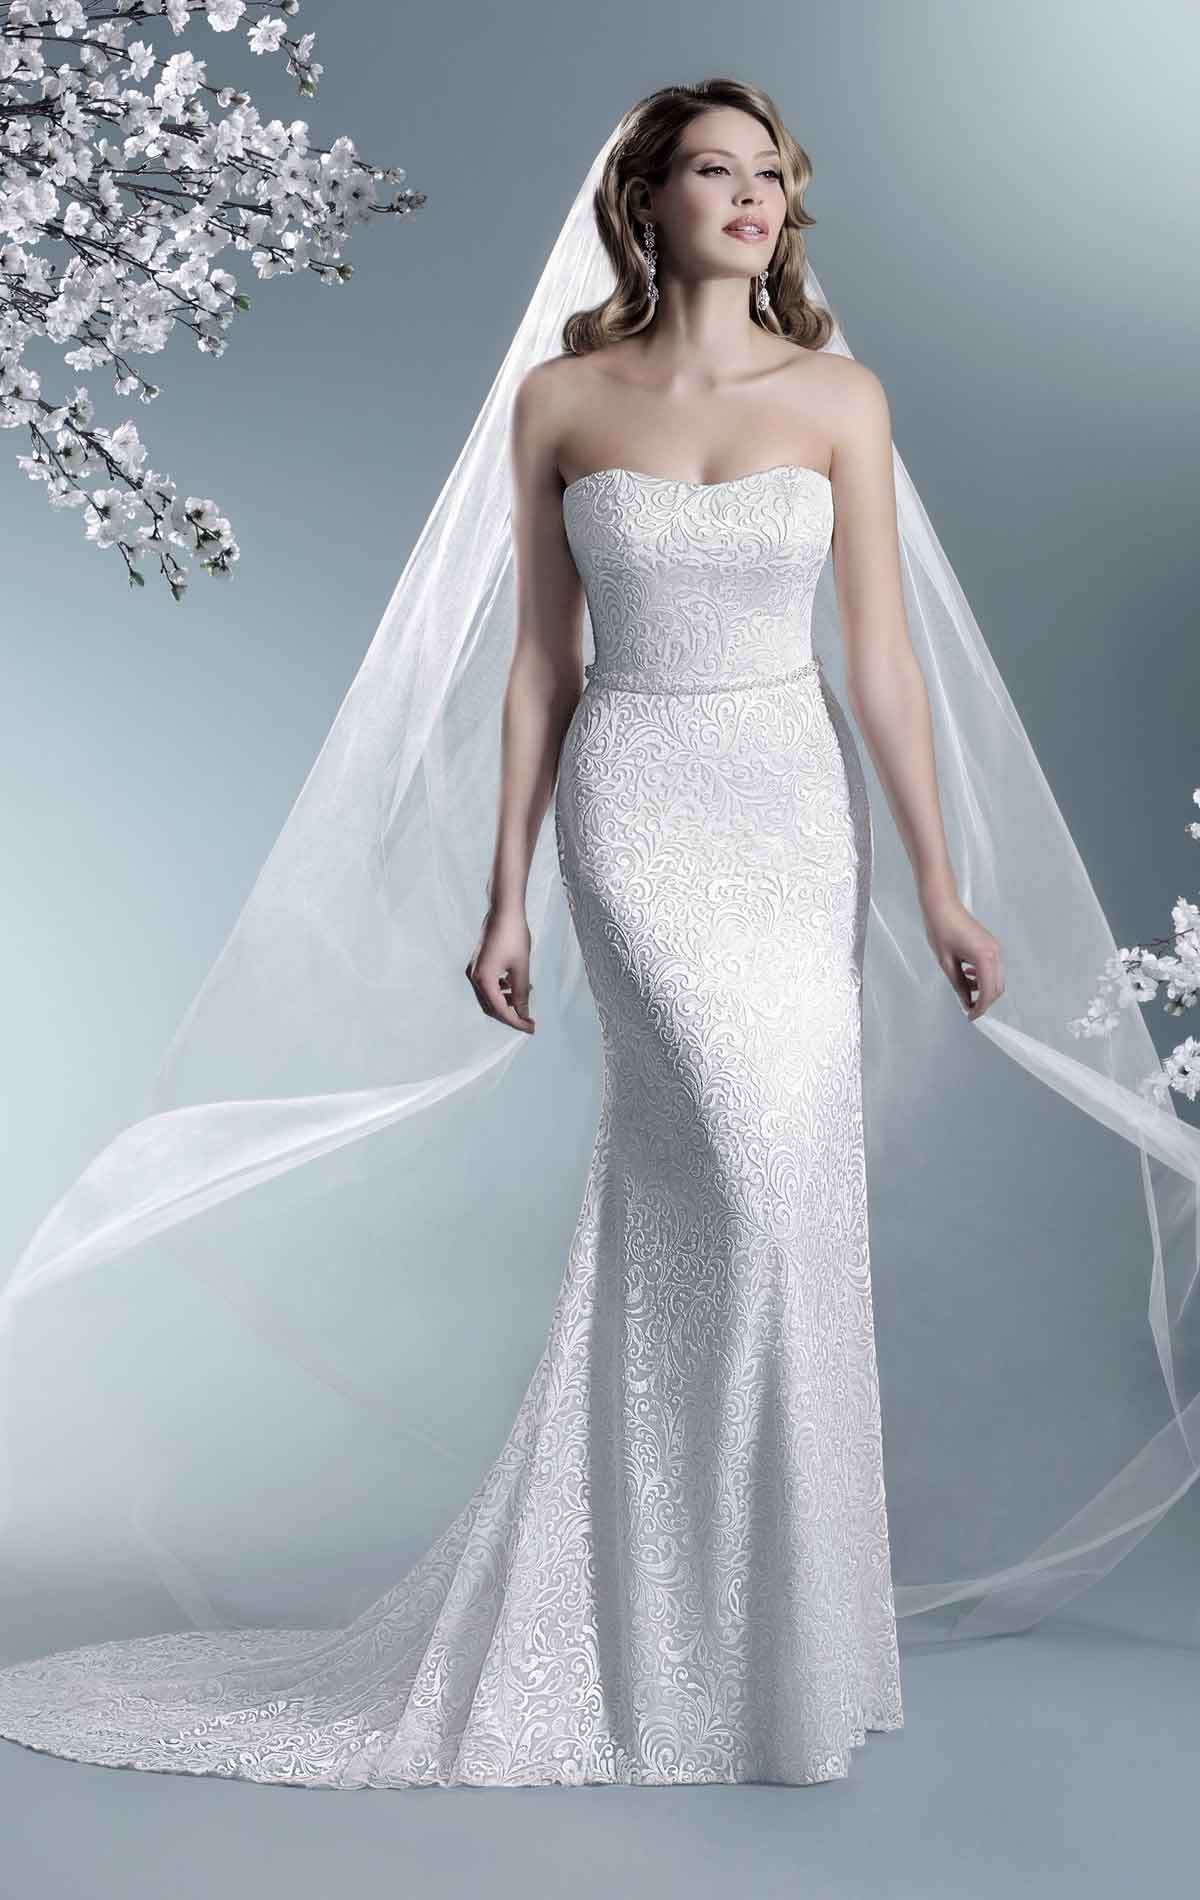 Outstanding Ex Sample Wedding Dresses Uk Picture Collection ...